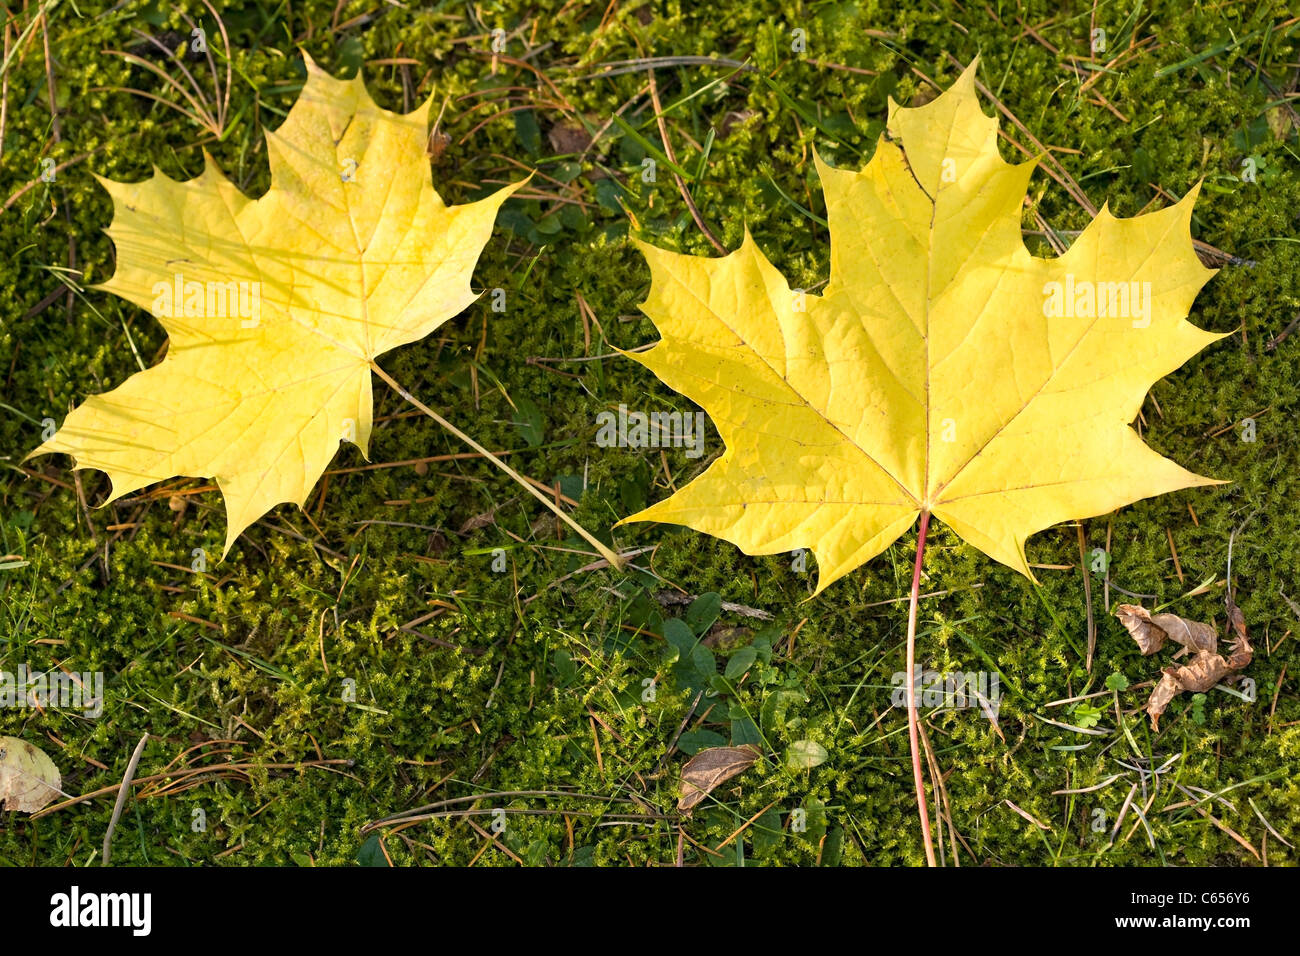 Yellow leaves on grass - Stock Image